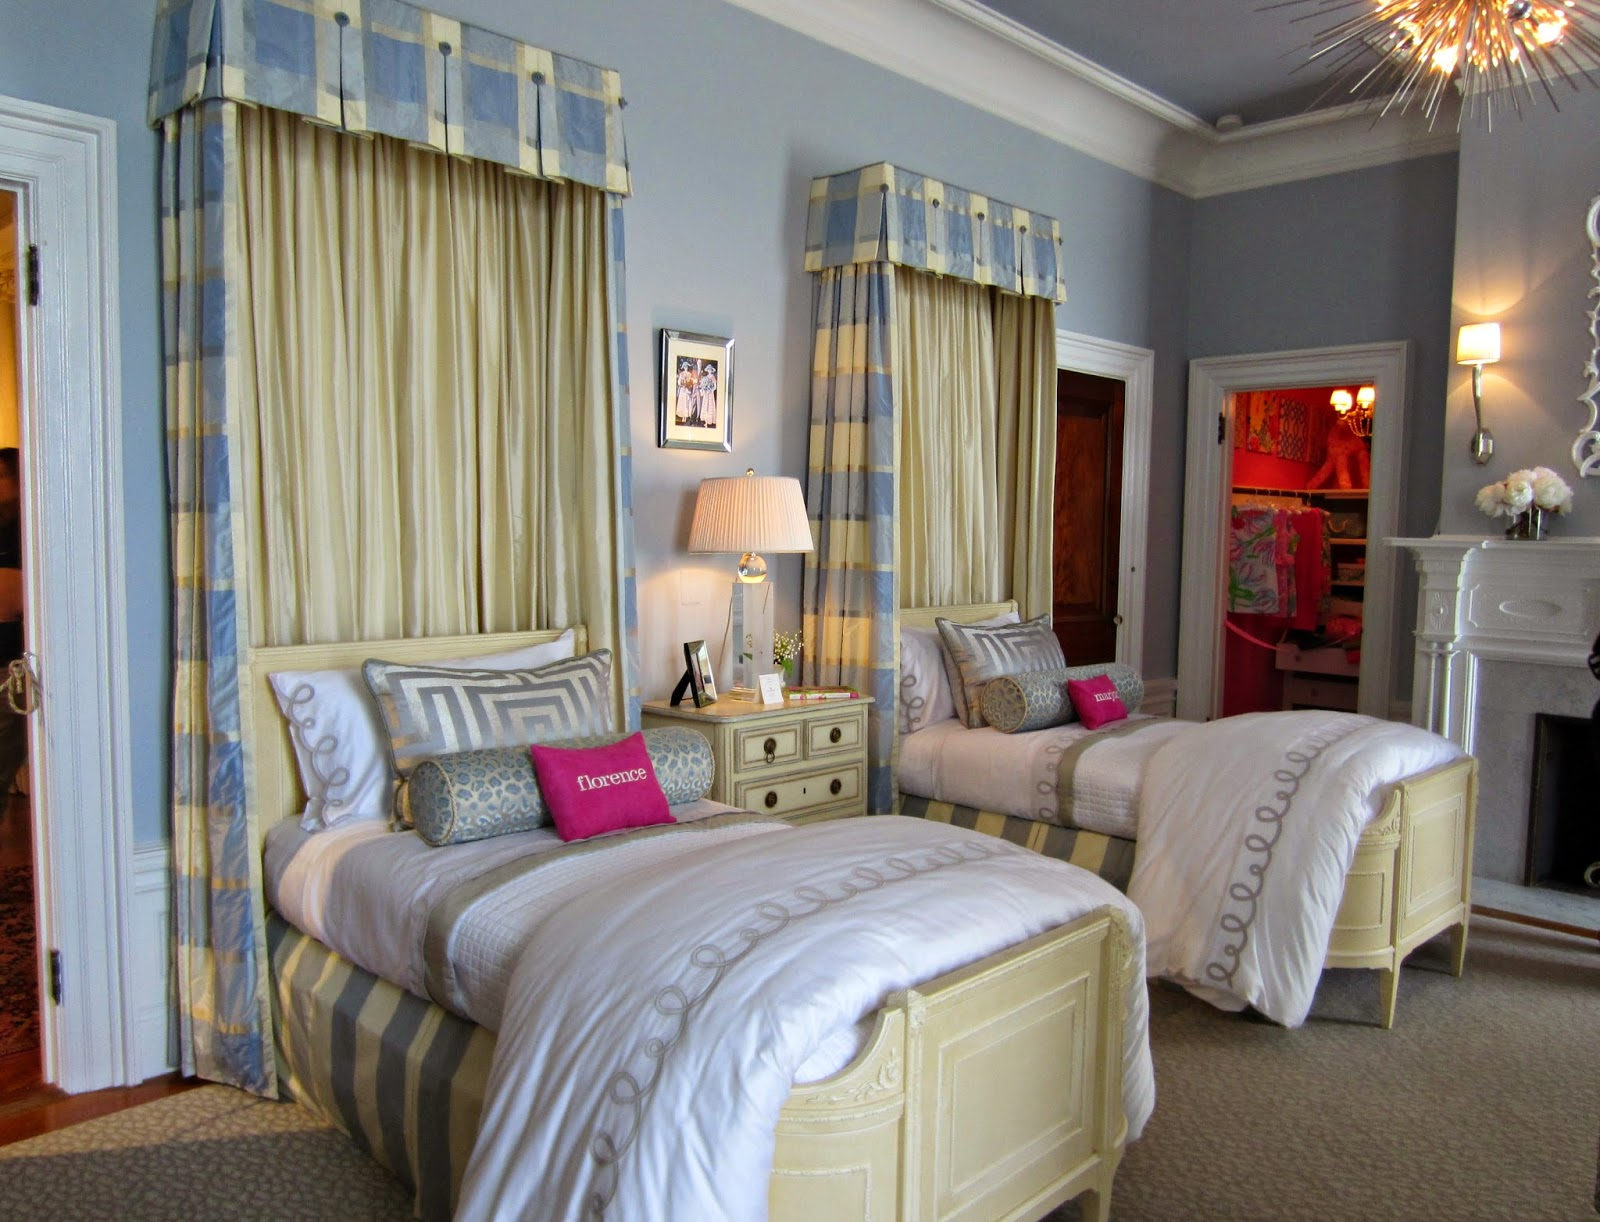 Calypso in the country a dream bedroom for girls - Bed for girls room ...